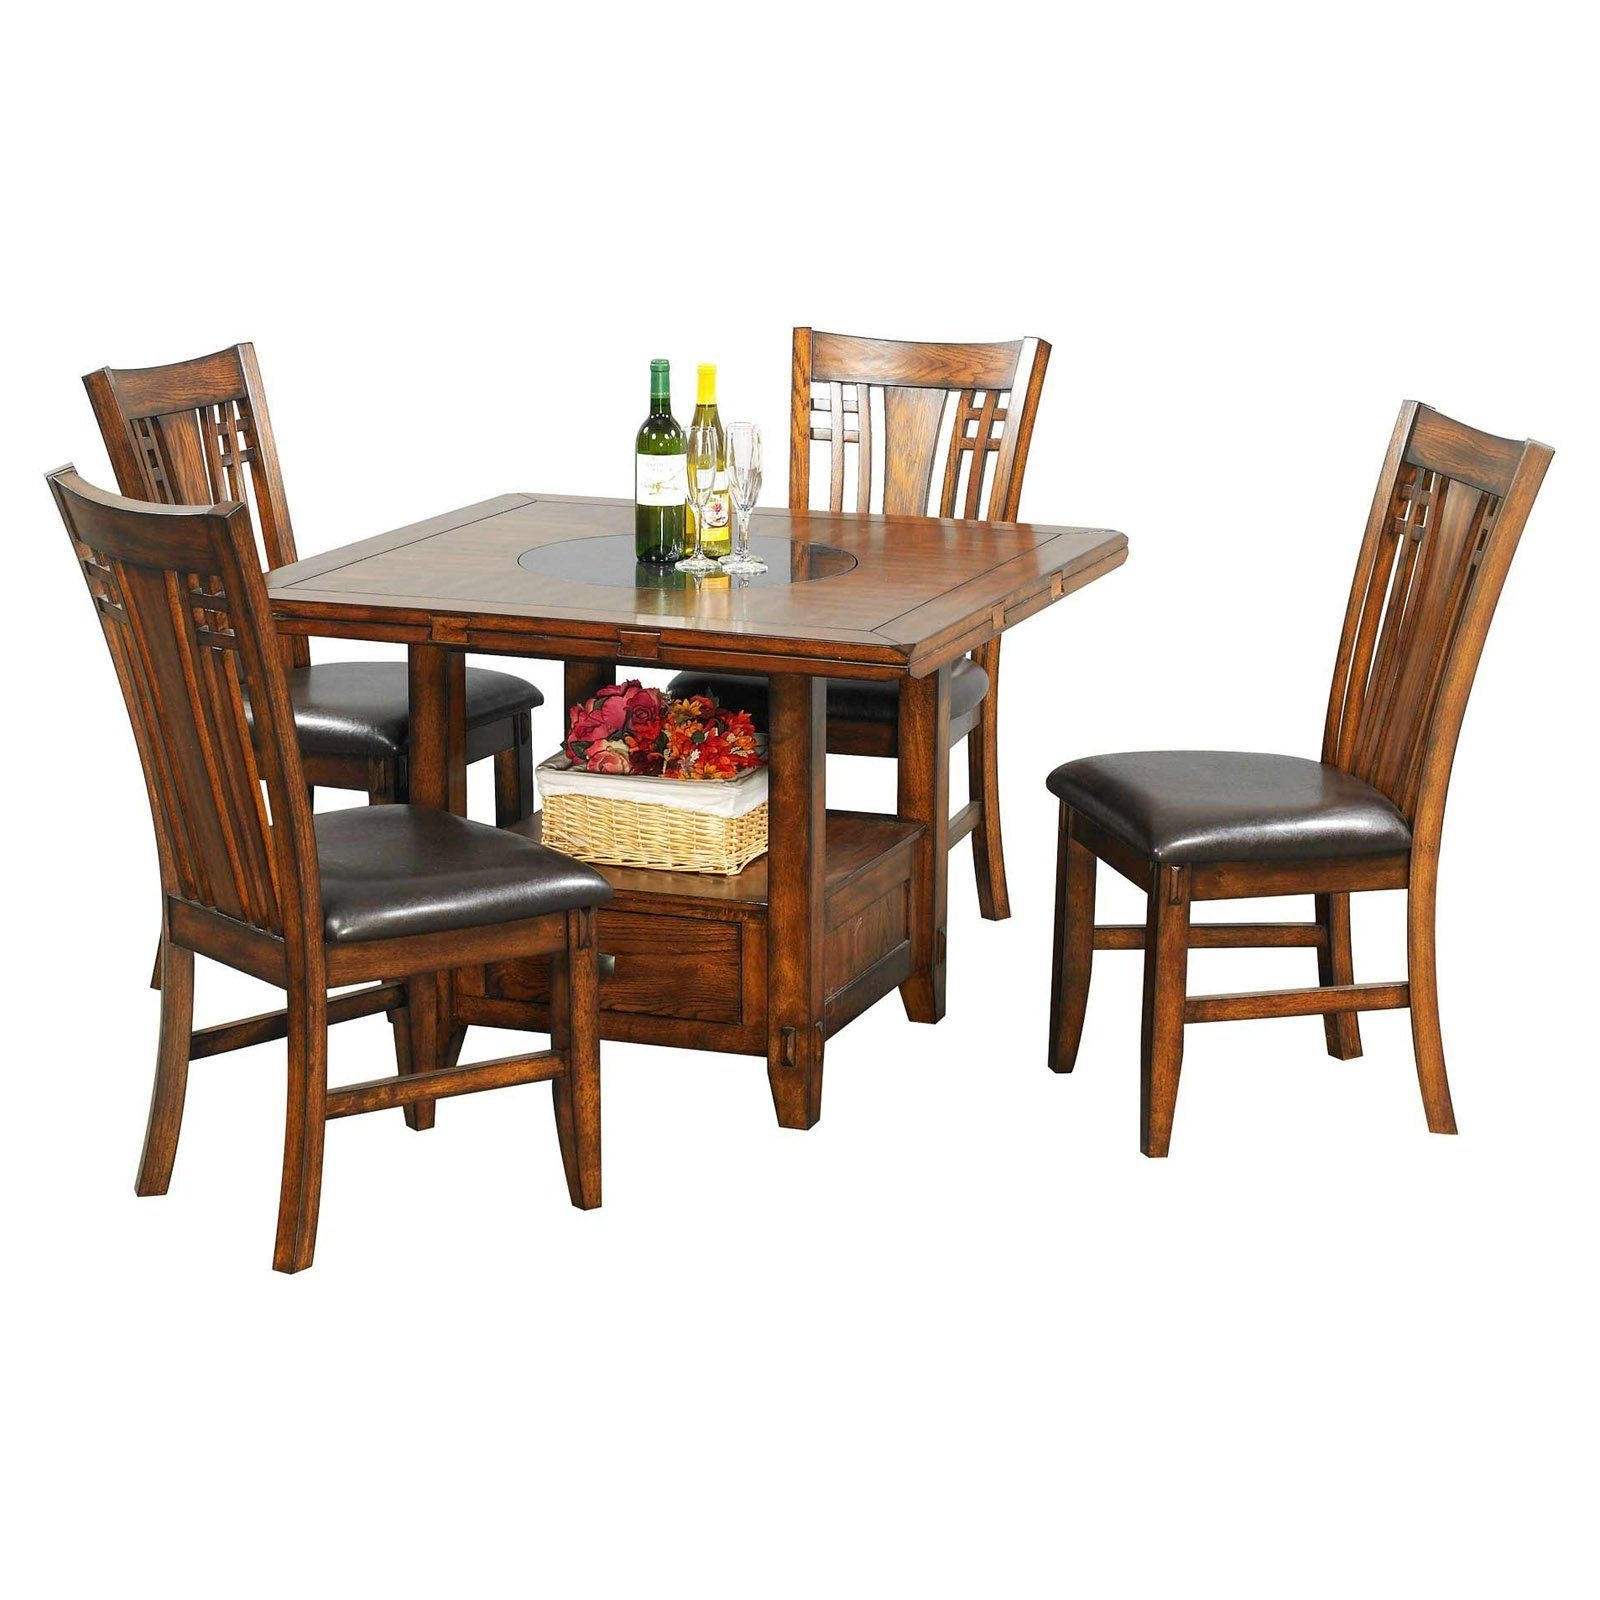 Preferred Winners Only Zahara 5 Piece Dining Table Set With Granite Lazy Susan Inside Craftsman 5 Piece Round Dining Sets With Side Chairs (Gallery 16 of 25)